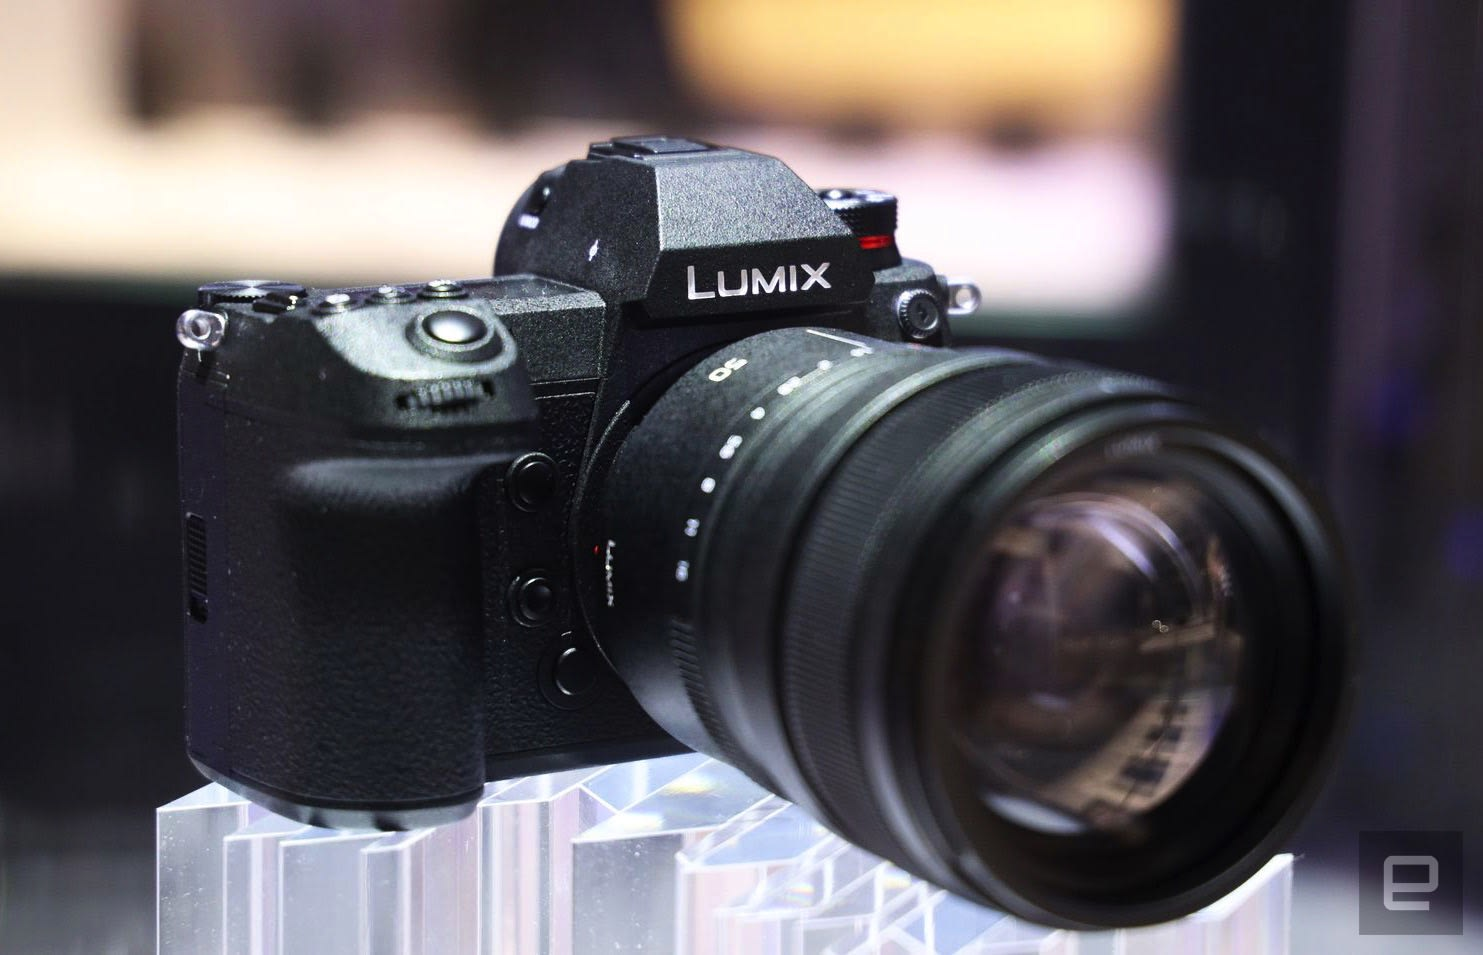 Sony\'s full-frame mirrorless cameras finally have some competition